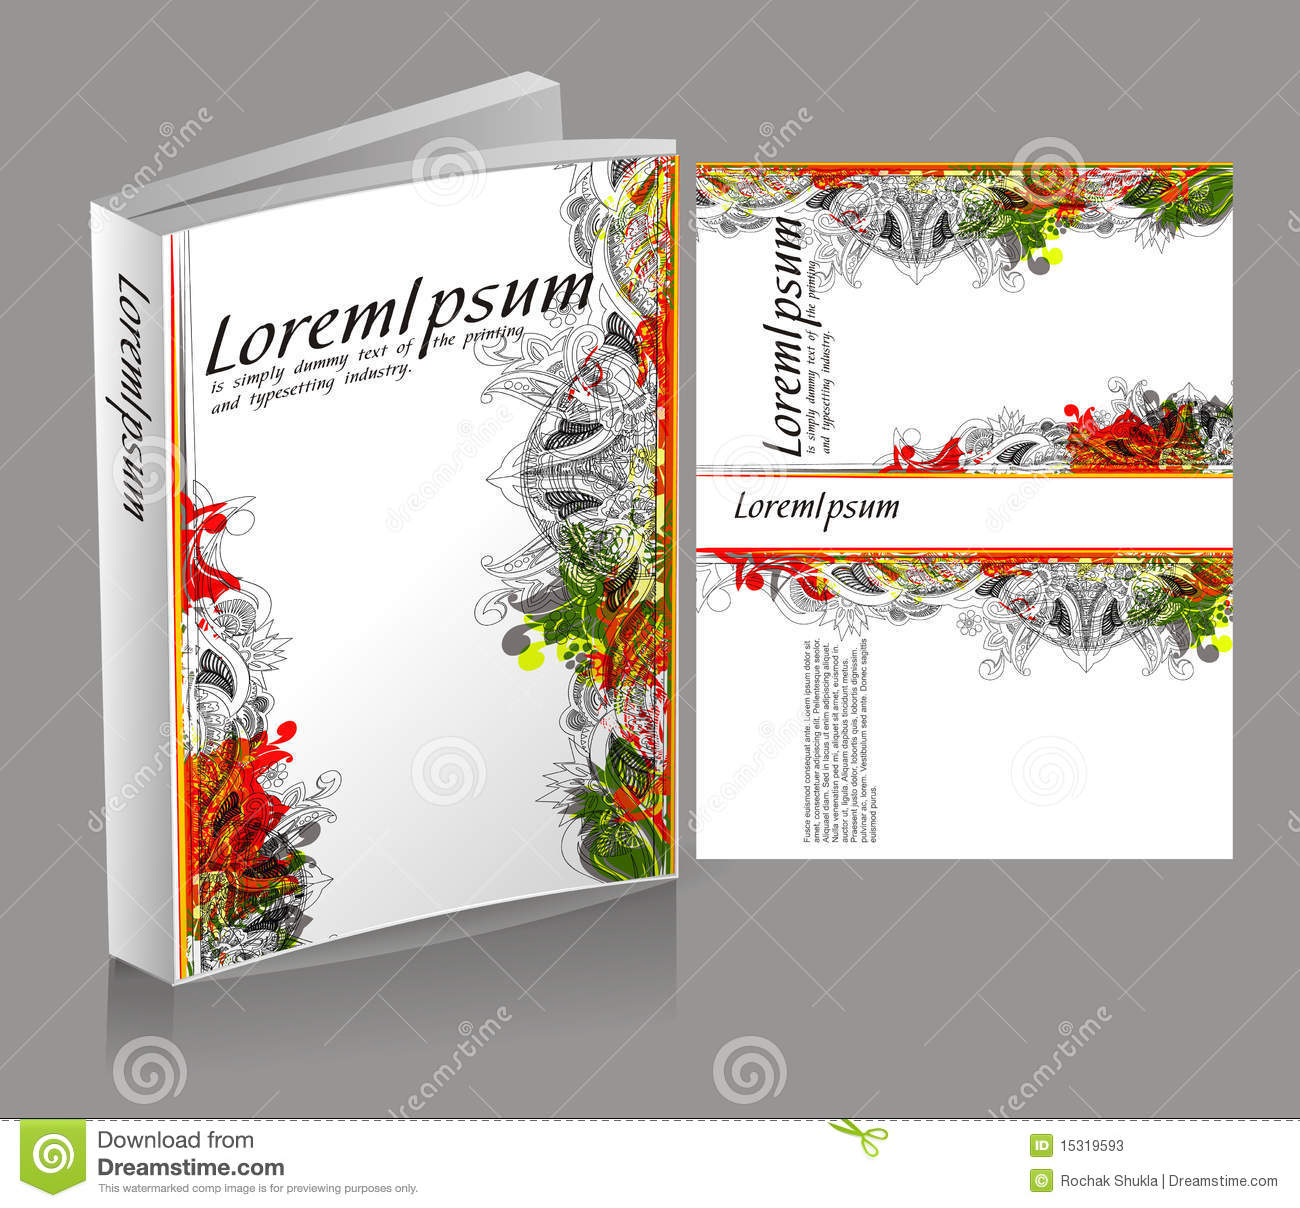 Photography Book Cover Design : Book cover design stock vector image of closed modern